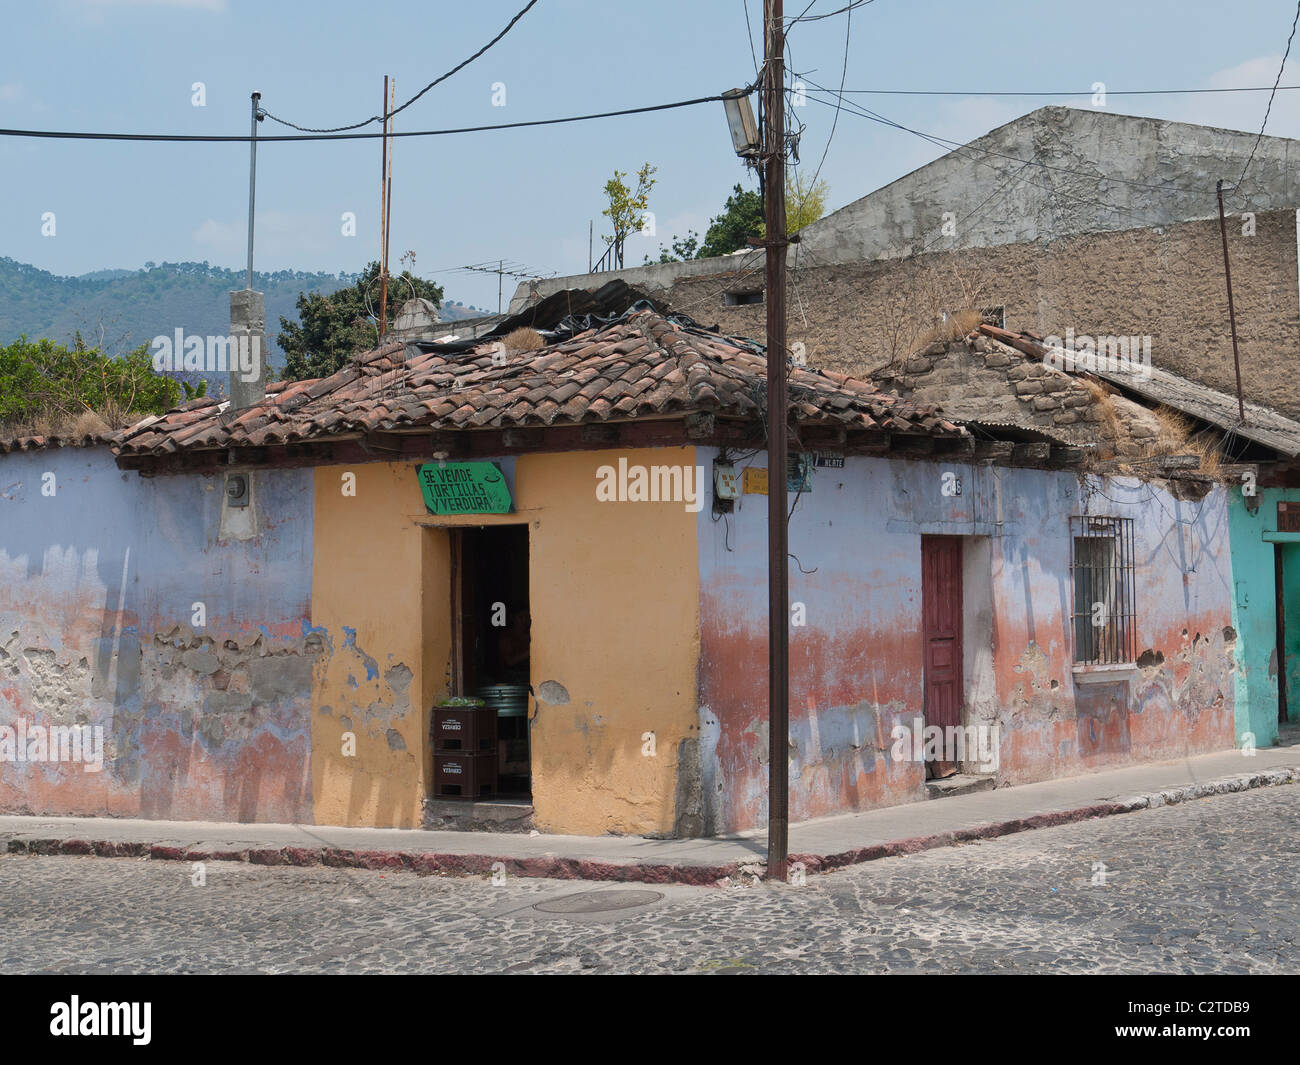 A typical multicolored building sits on a corner n the Spanish colonial city of Antigua, Guatemala. - Stock Image